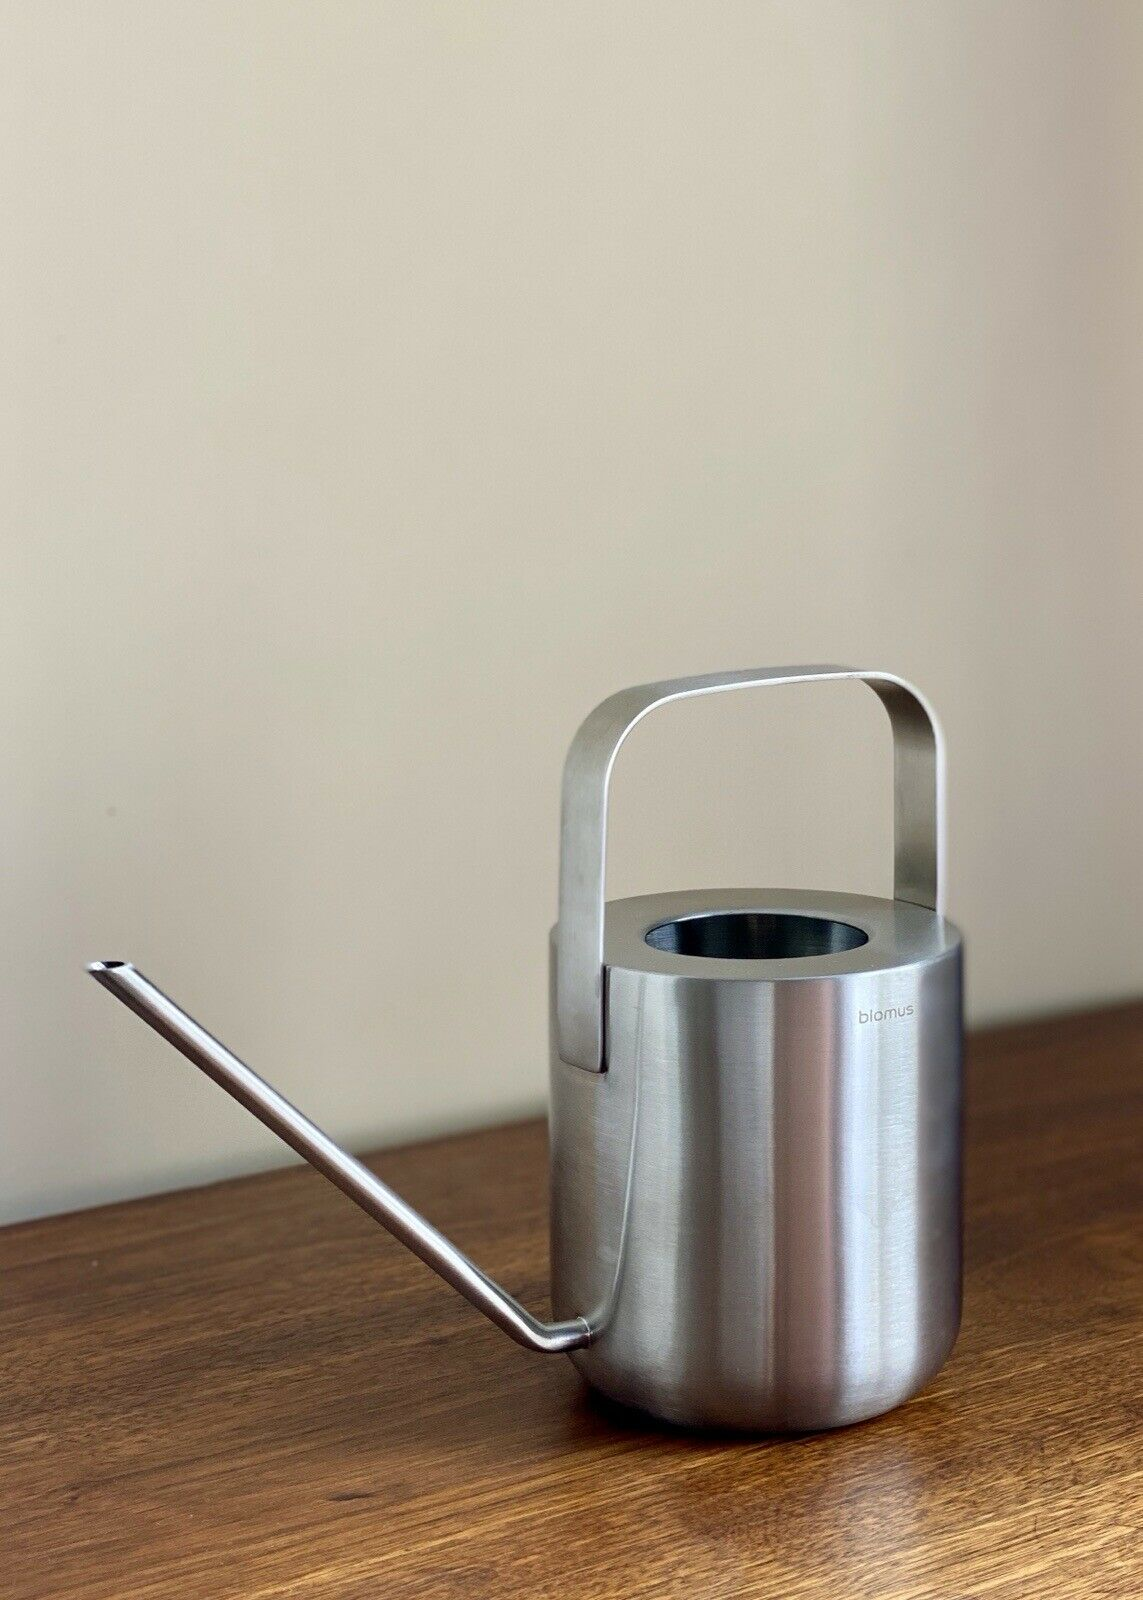 Blomus Watering Can 1 Litre